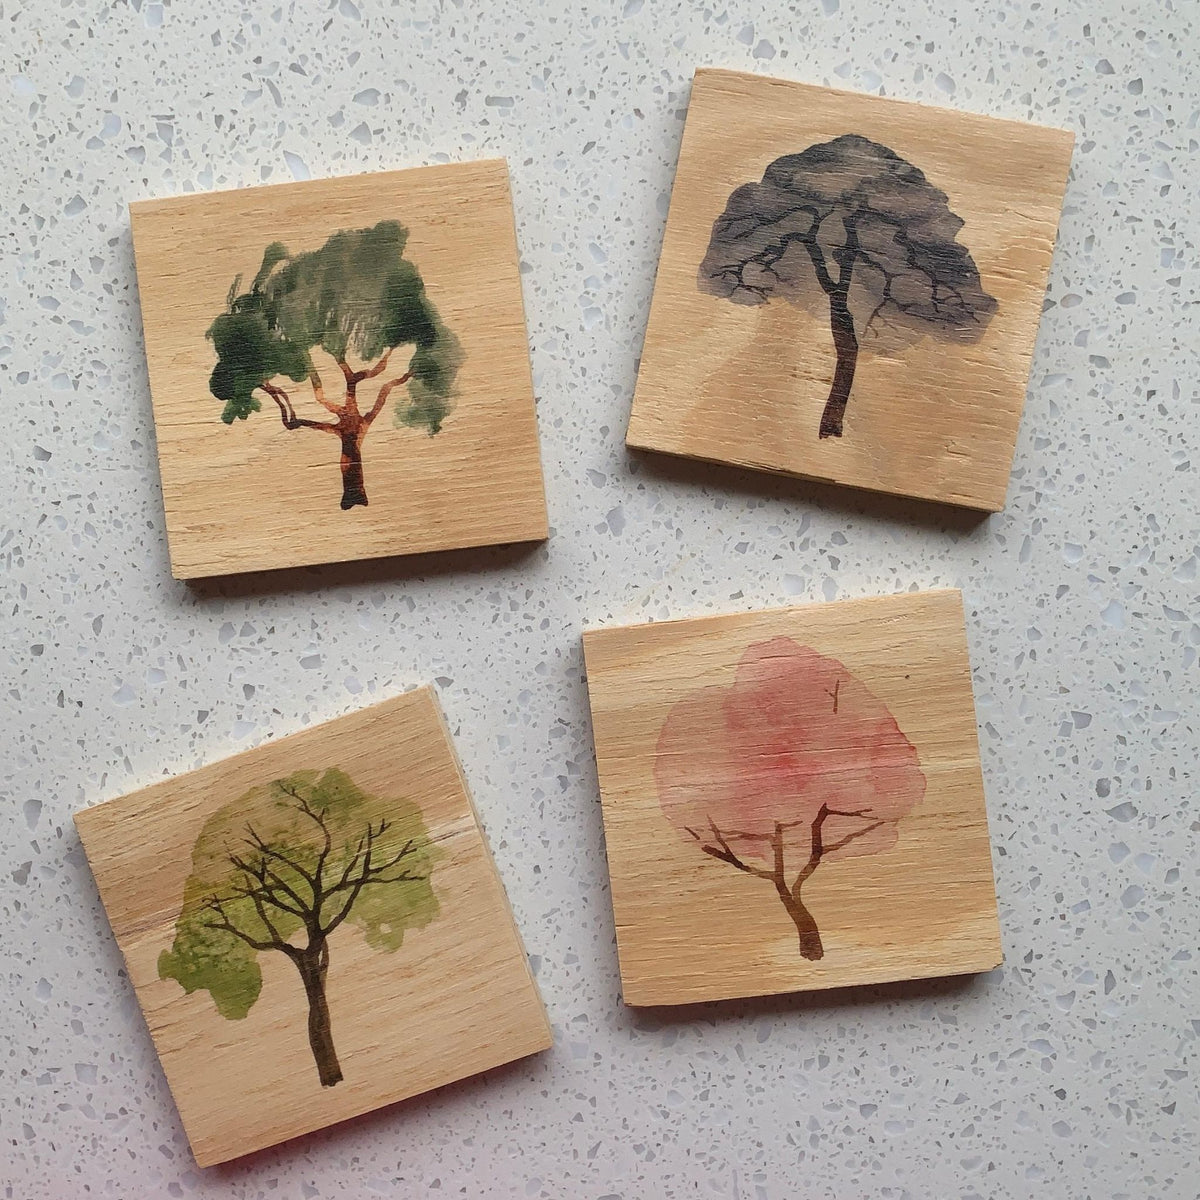 Wooden Coasters – Watercolour Trees